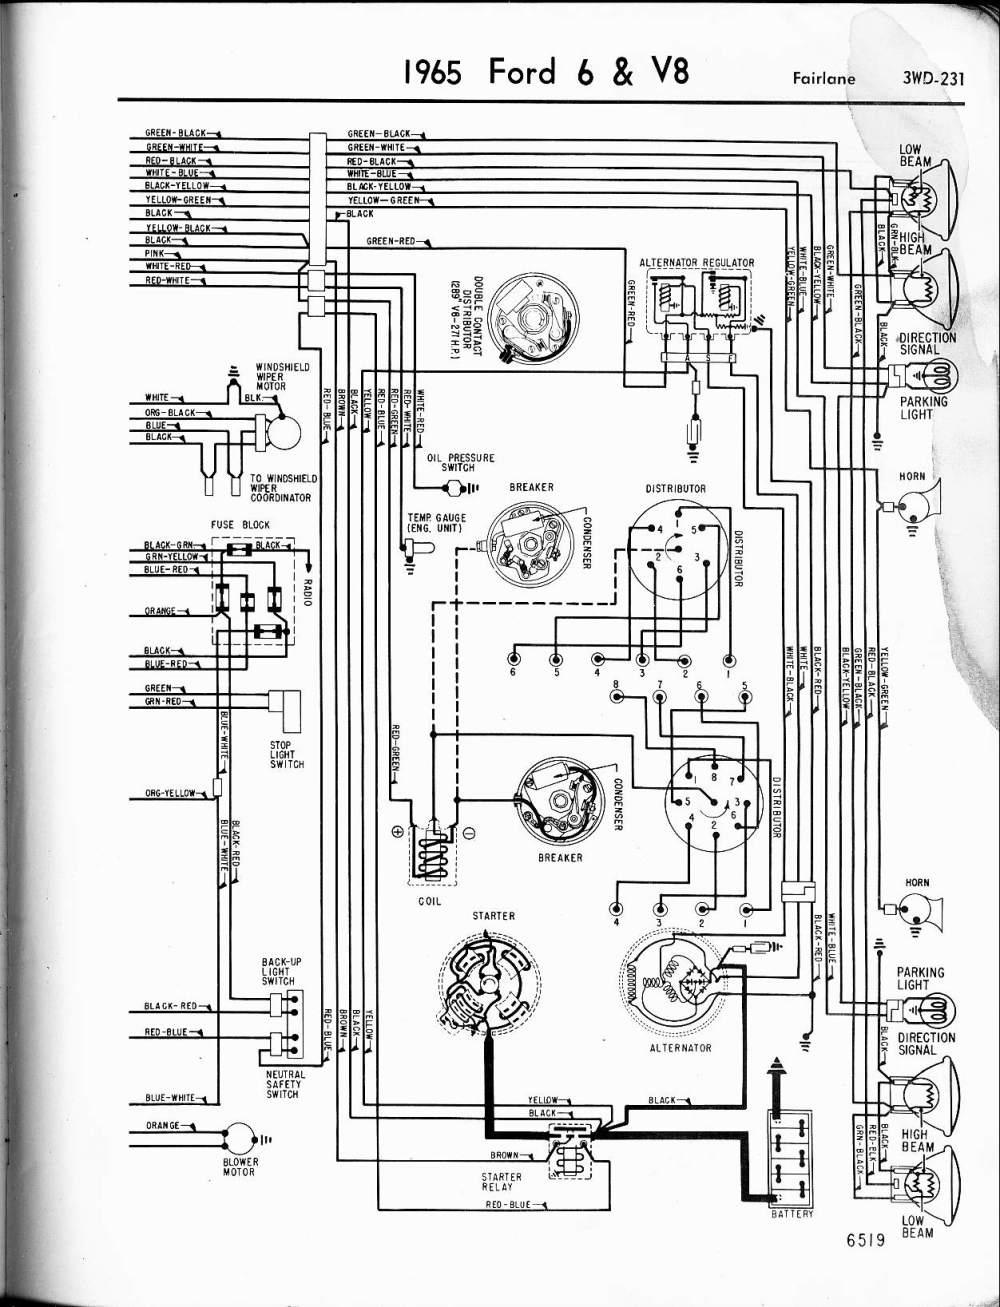 1968 Ford Ranchero Wiring Diagram Reading Remote Start Wiring Diagrams Pipiing Holden Commodore Jeanjaures37 Fr